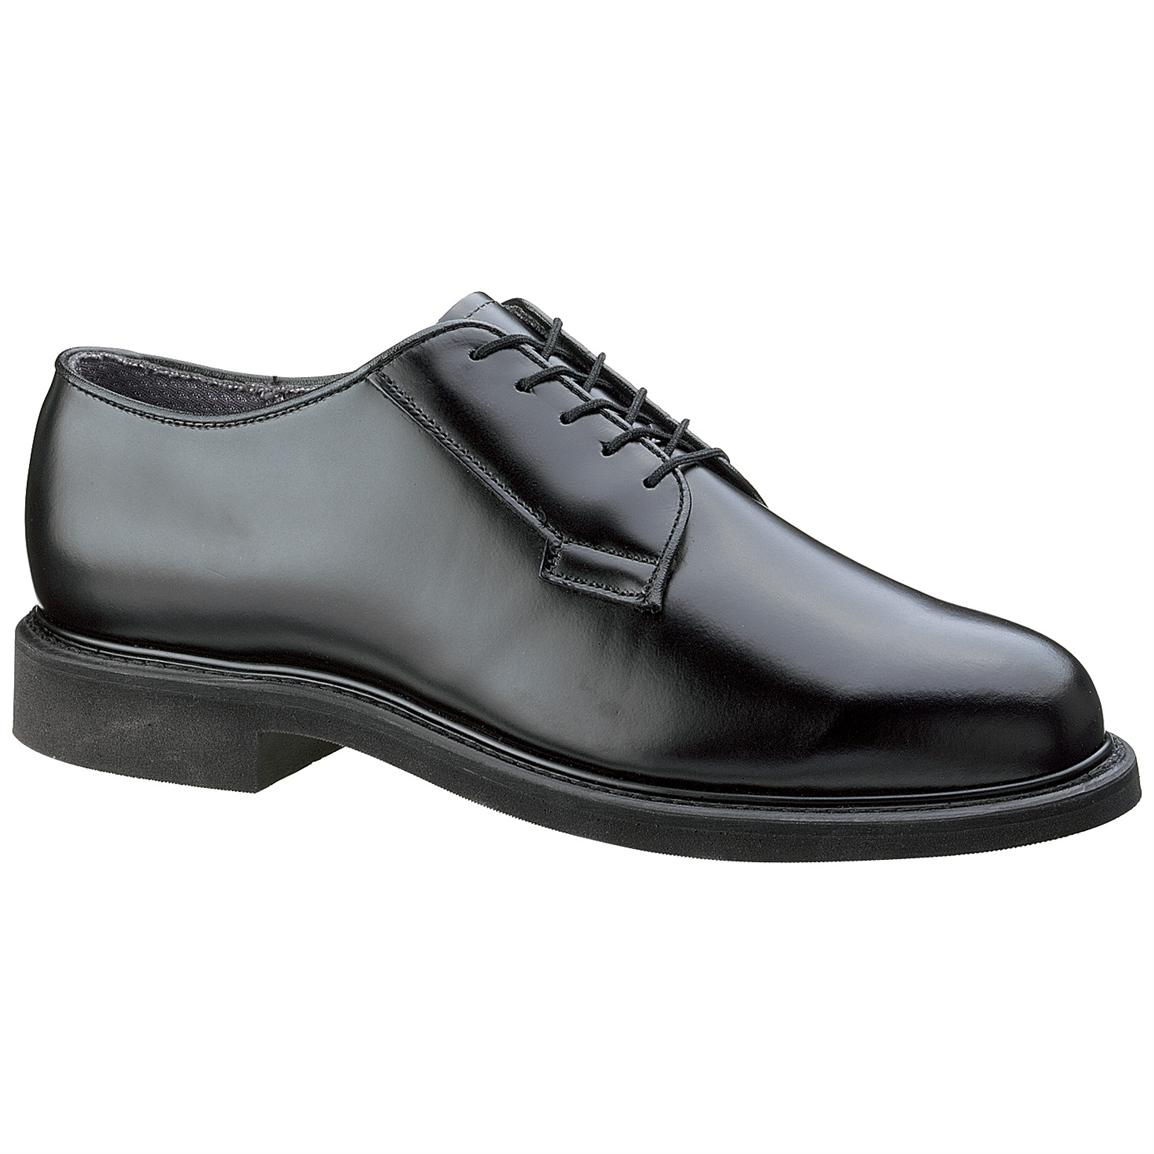 Bates® Lites™ Leather Oxford Dress Shoes